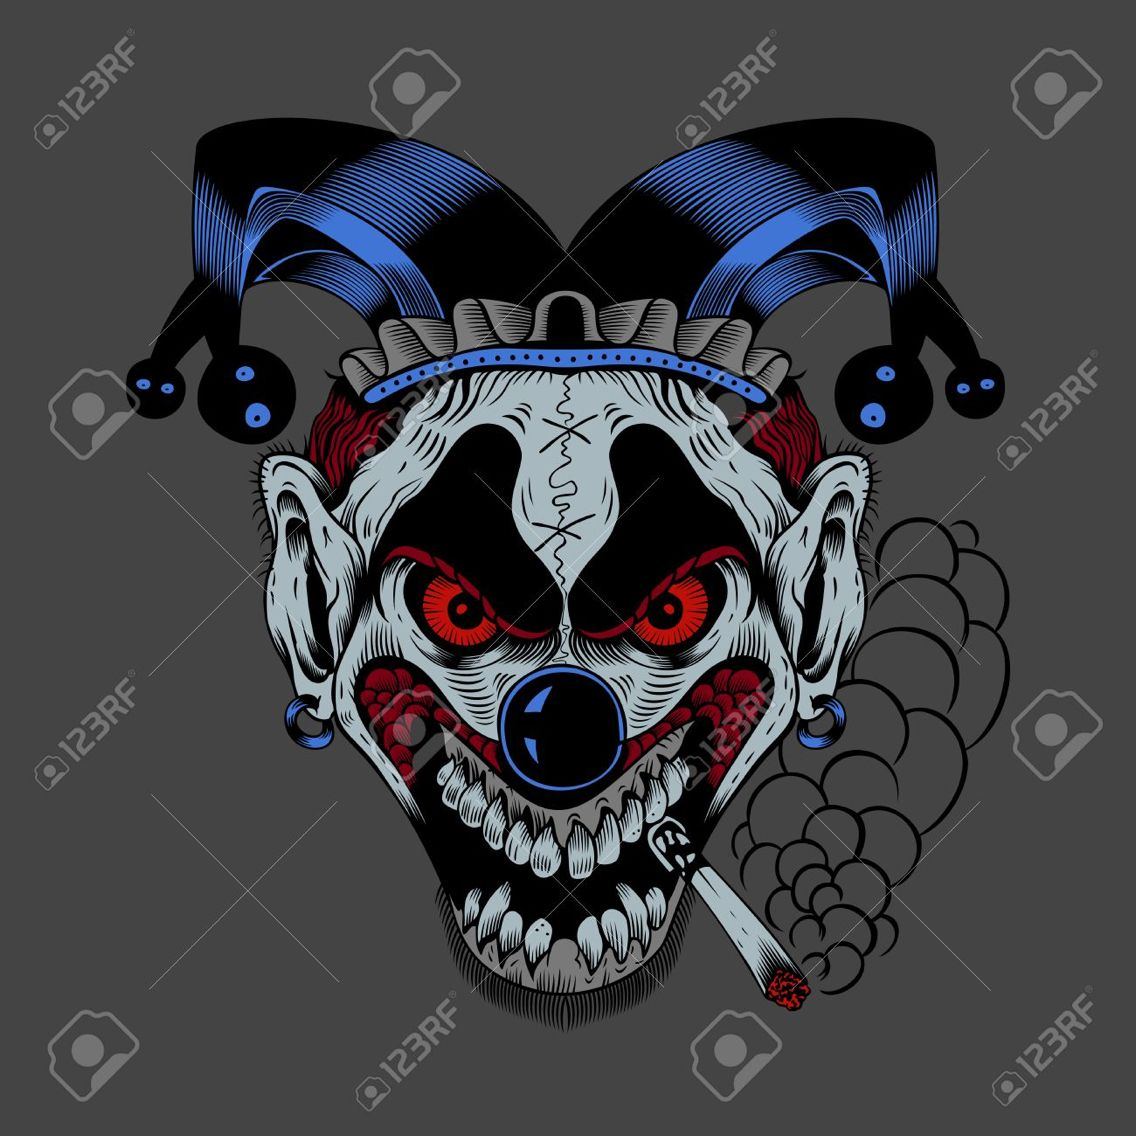 Creepy clown clipart do not say check out these pictures graphic free library Psychotic jester clown | Psychotic Clowns | Scary clown drawing ... graphic free library